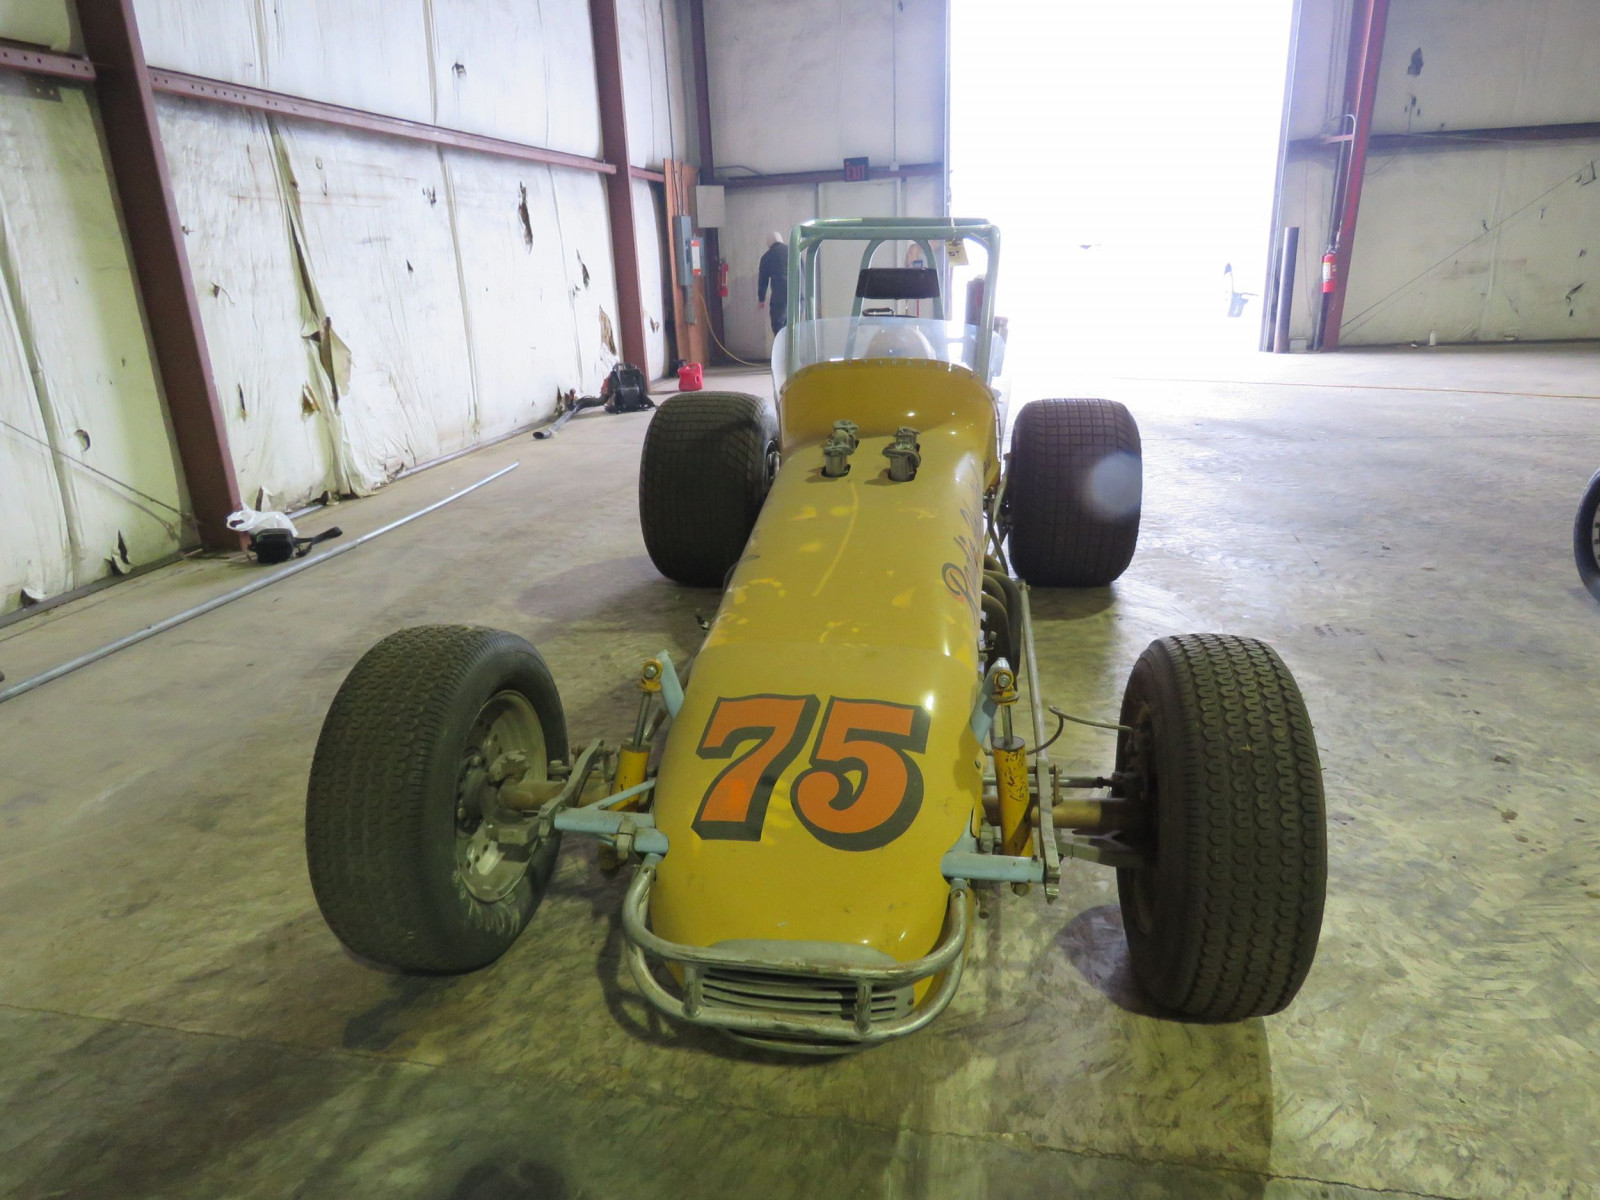 1972 fuel Injected Midget Race Car - Image 2